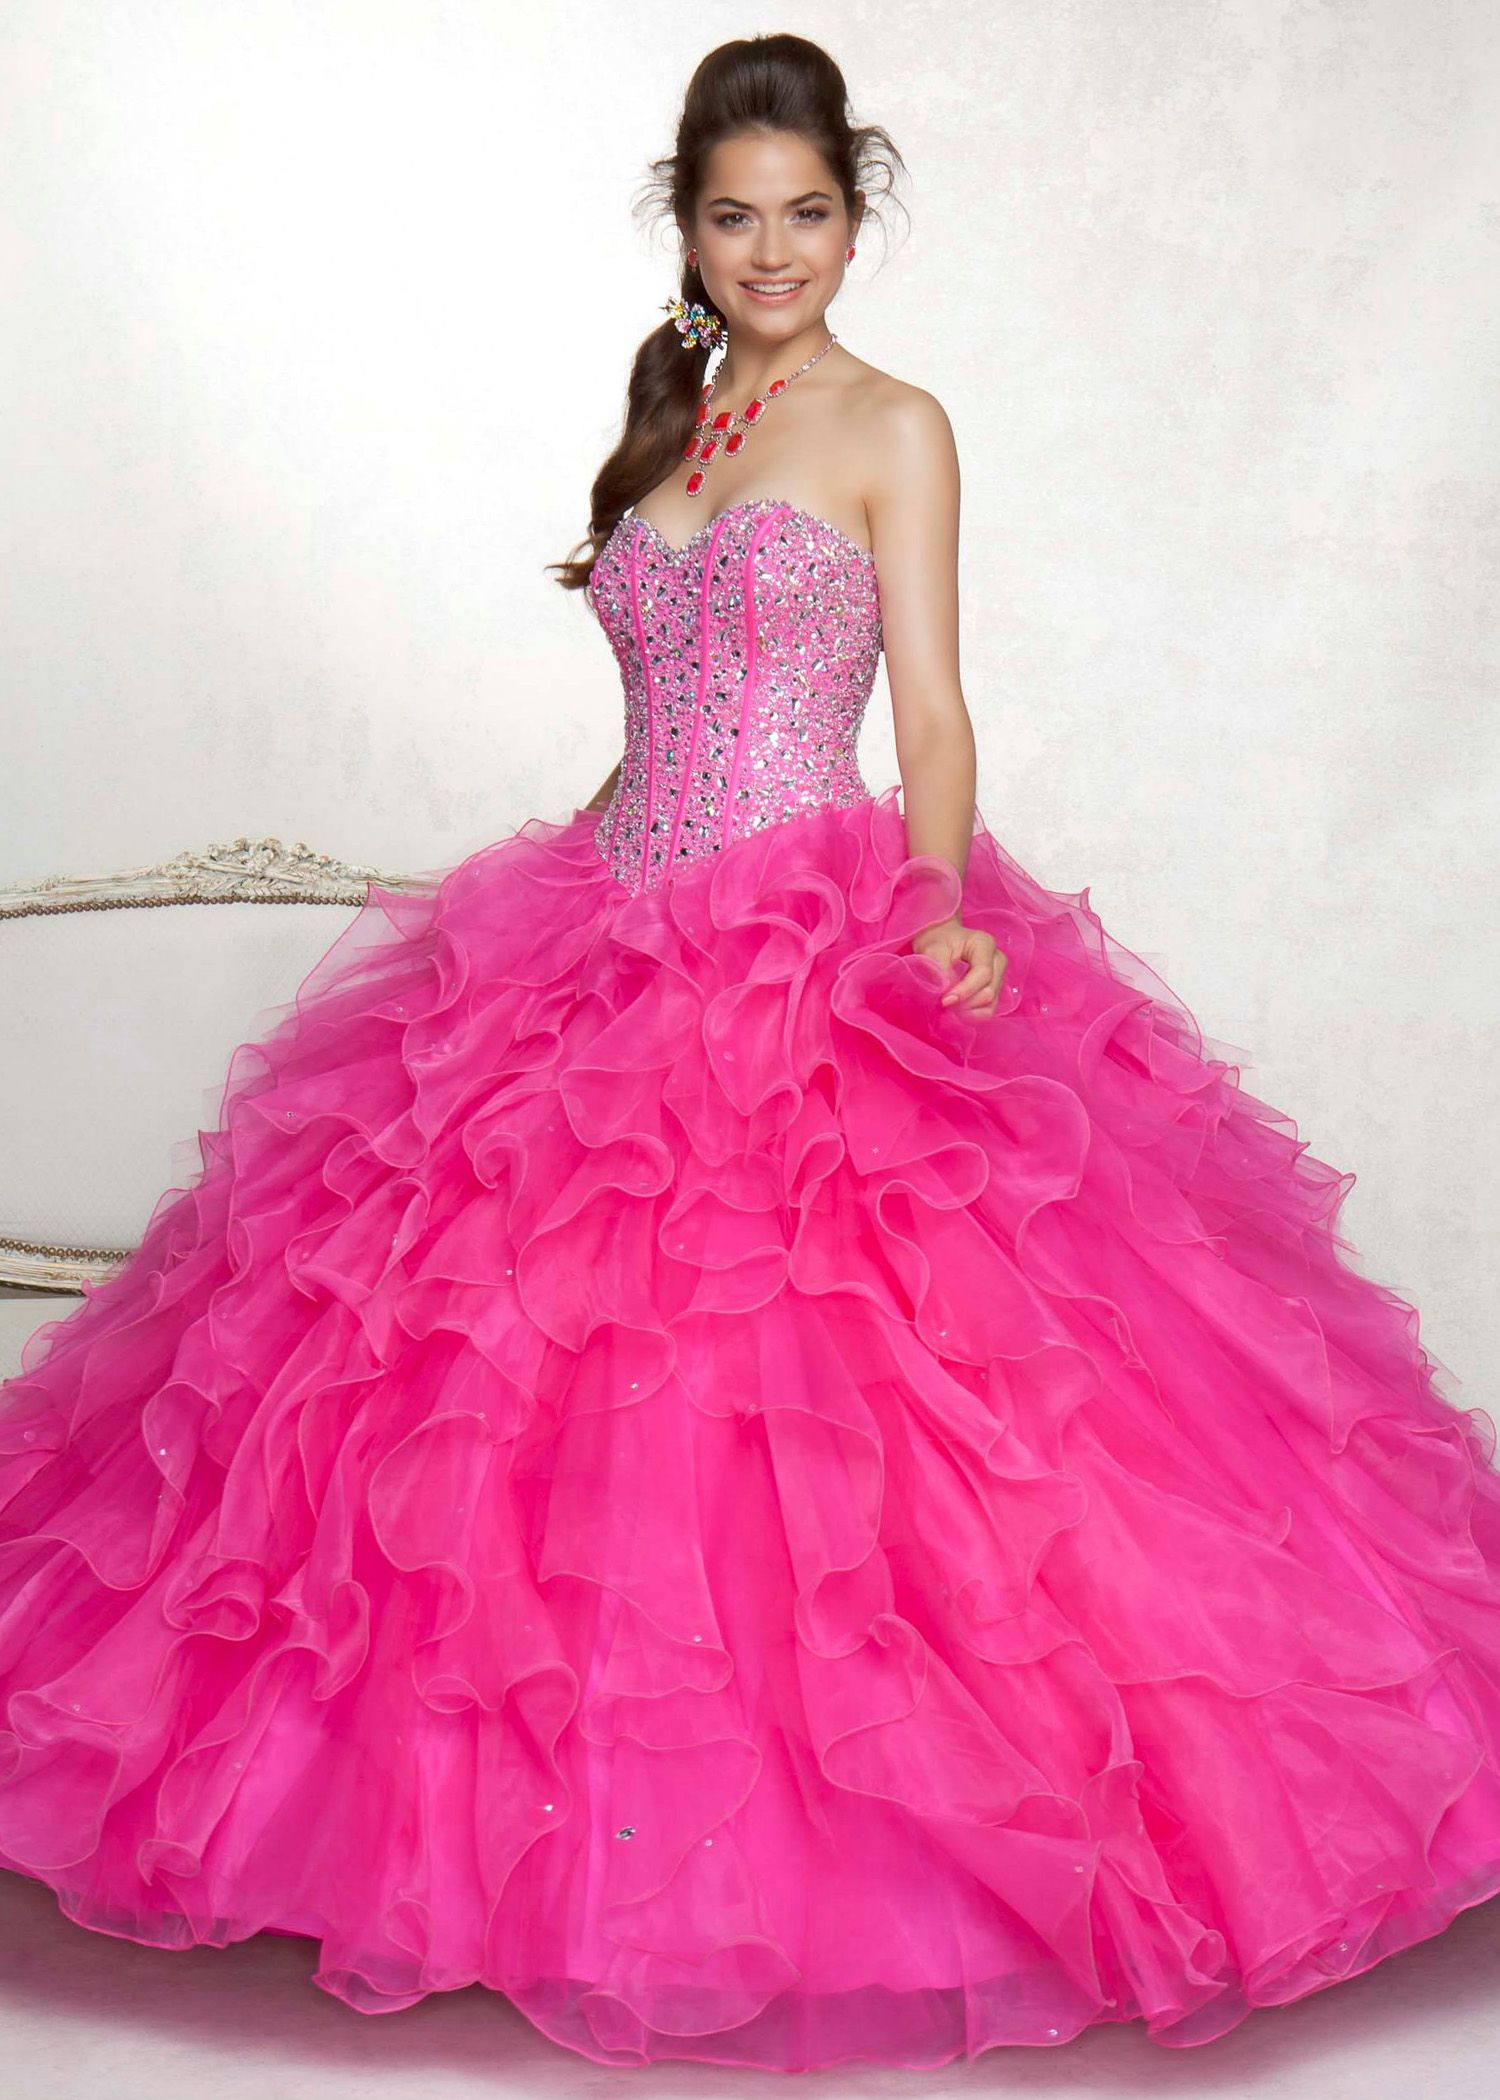 pink ball dresses - Dress Yp